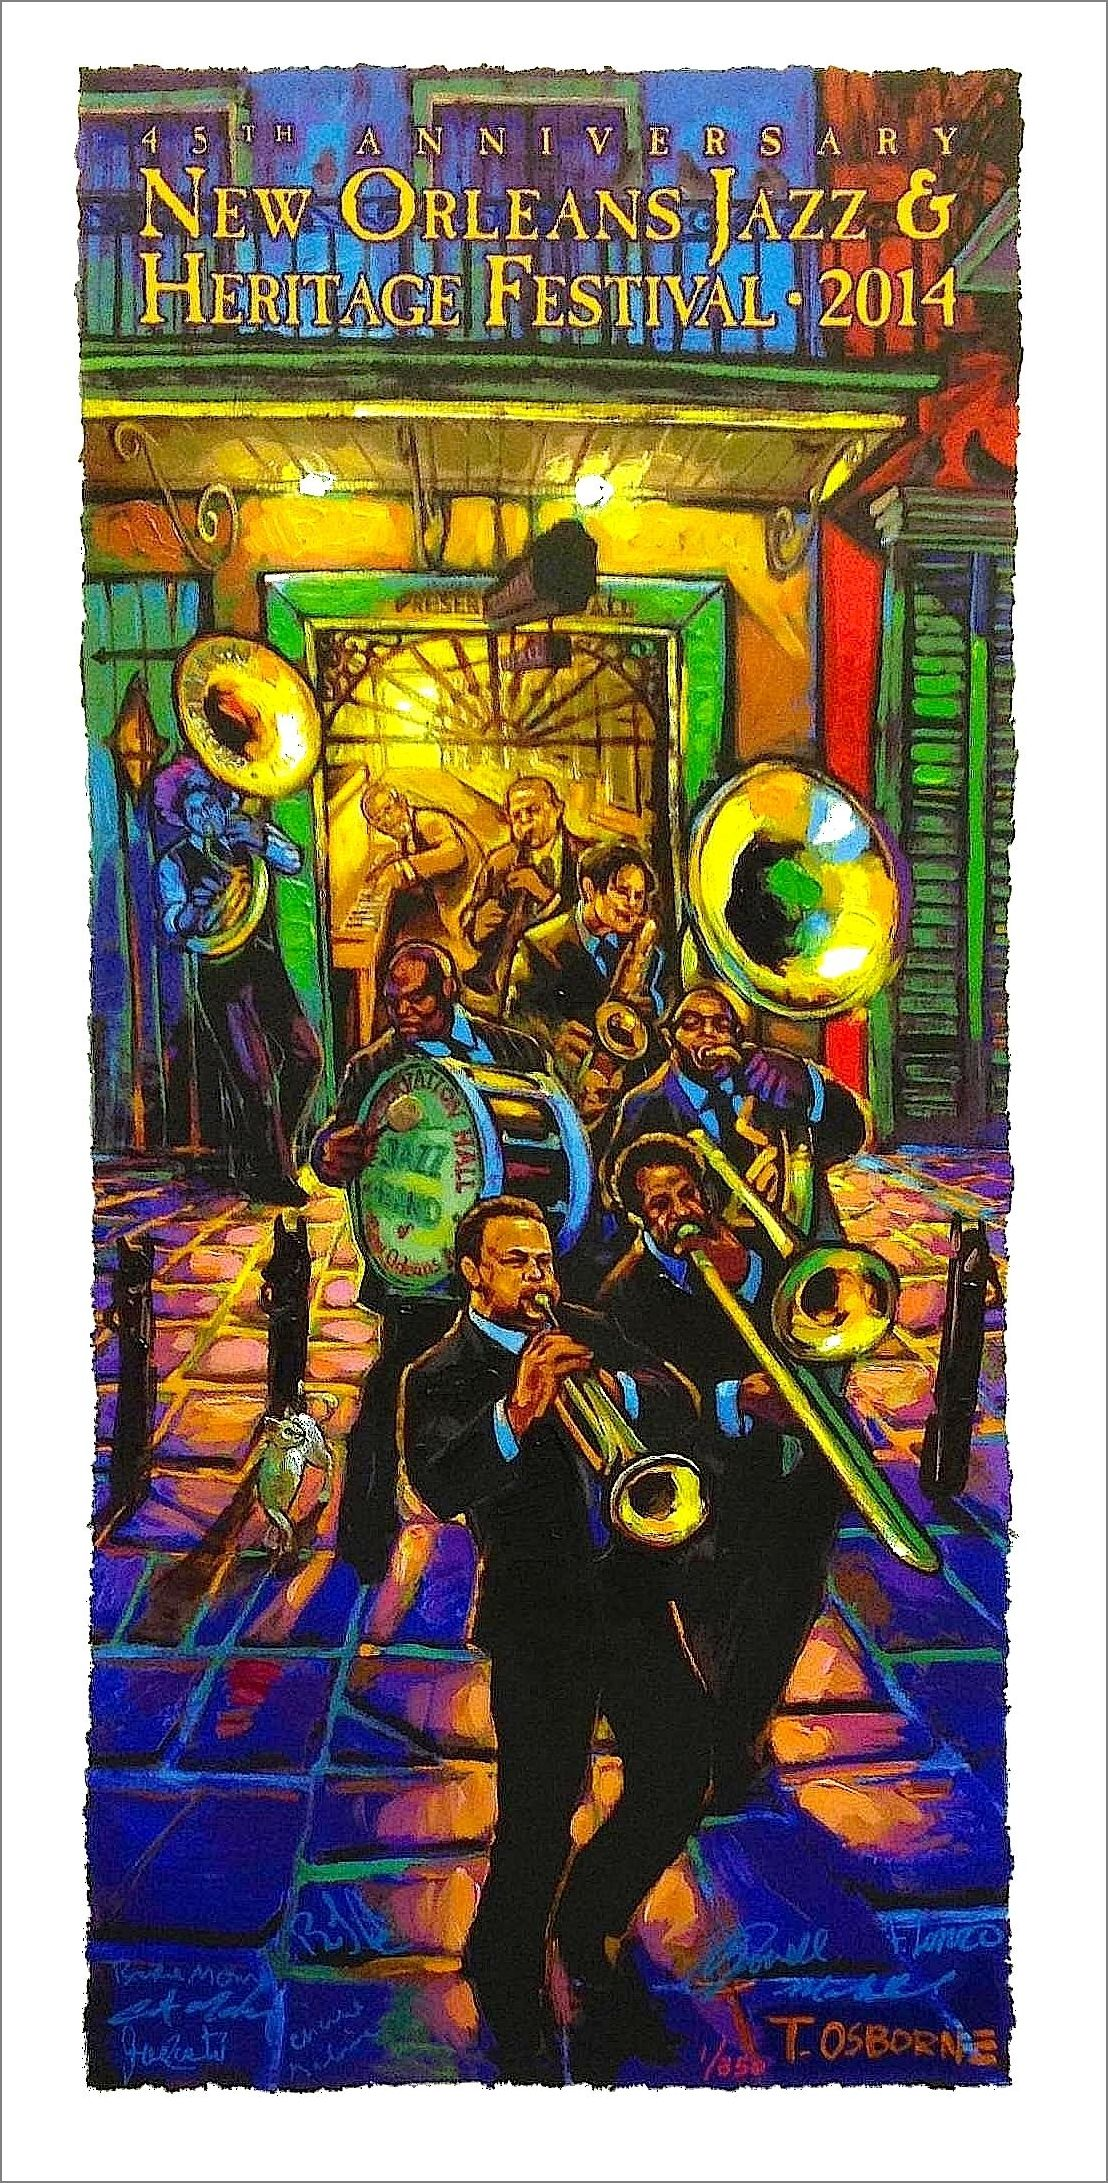 www.art4now.com - in 2014 Jazz Fest Poster | Louisiana ...